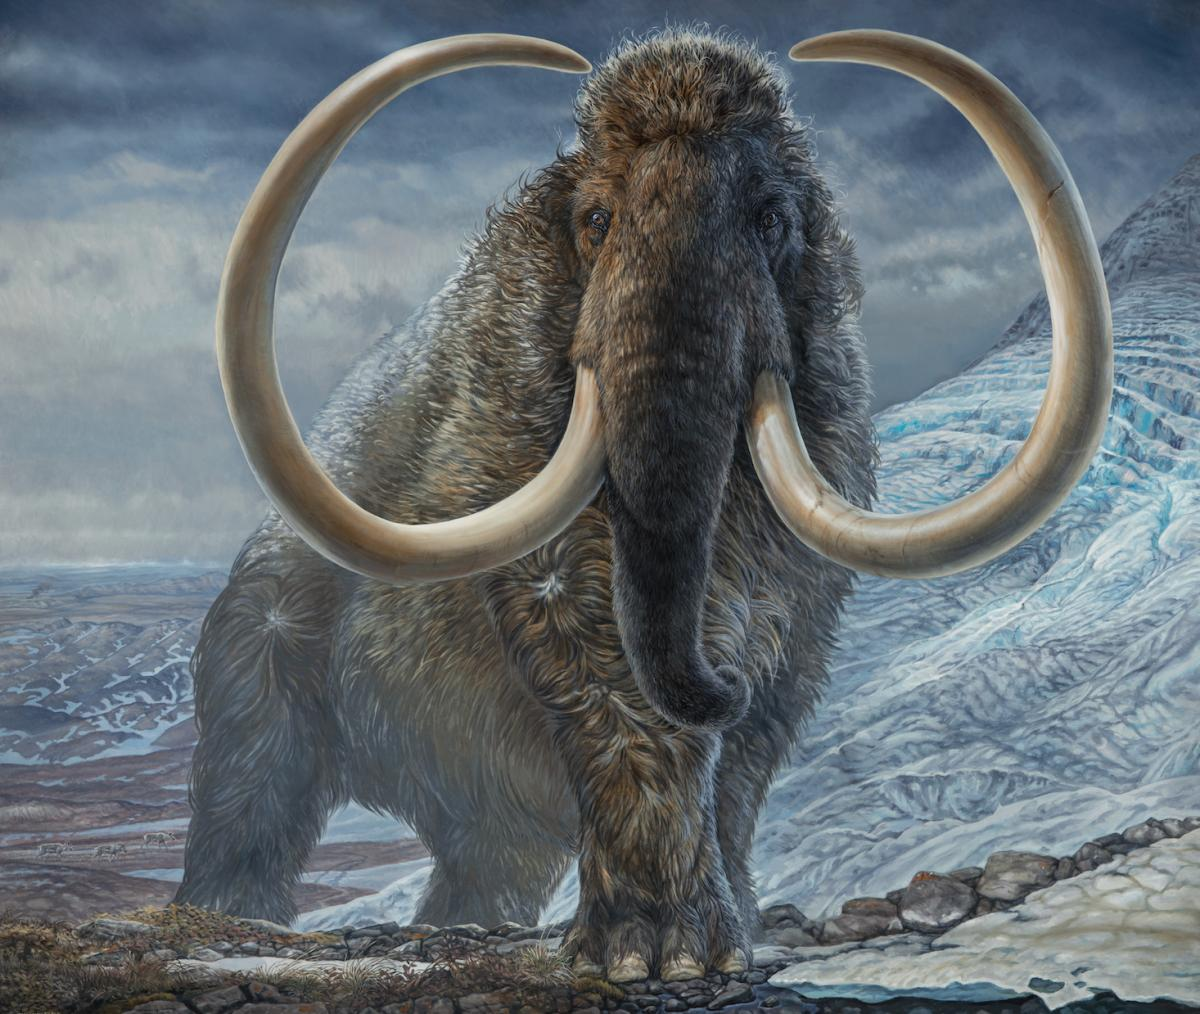 A woolly mammoth with large curling tusks wanders through an icy landscape under billowing grey clouds